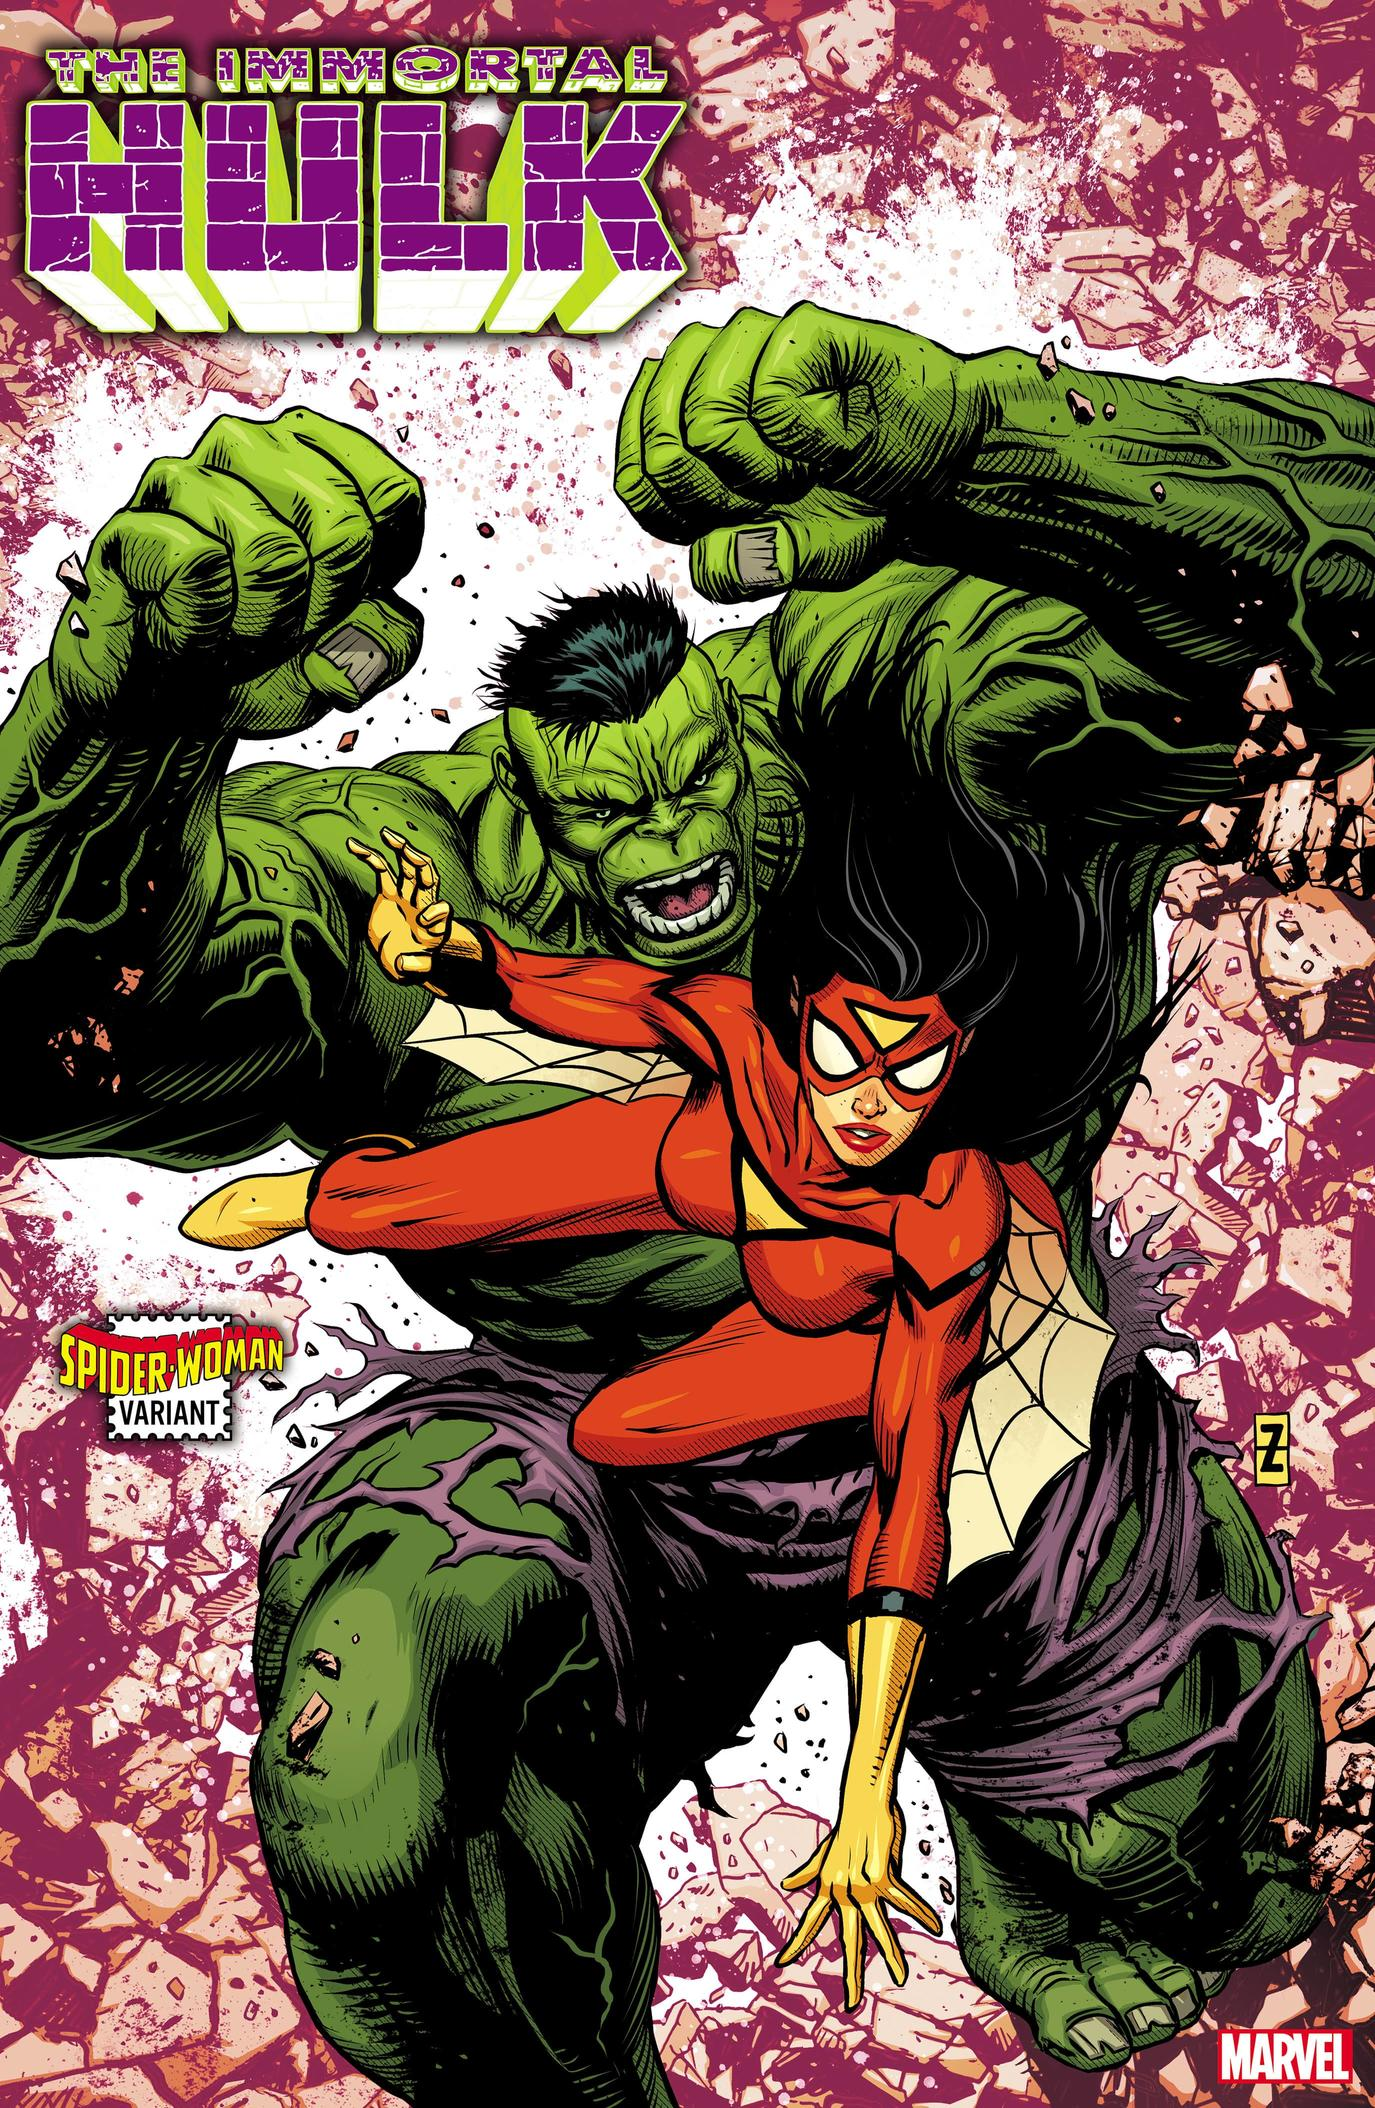 IMMORTAL HULK #32 SPIDER-WOMAN VARIANT by PATCH ZIRCHER with colors by DAVE McCAIG